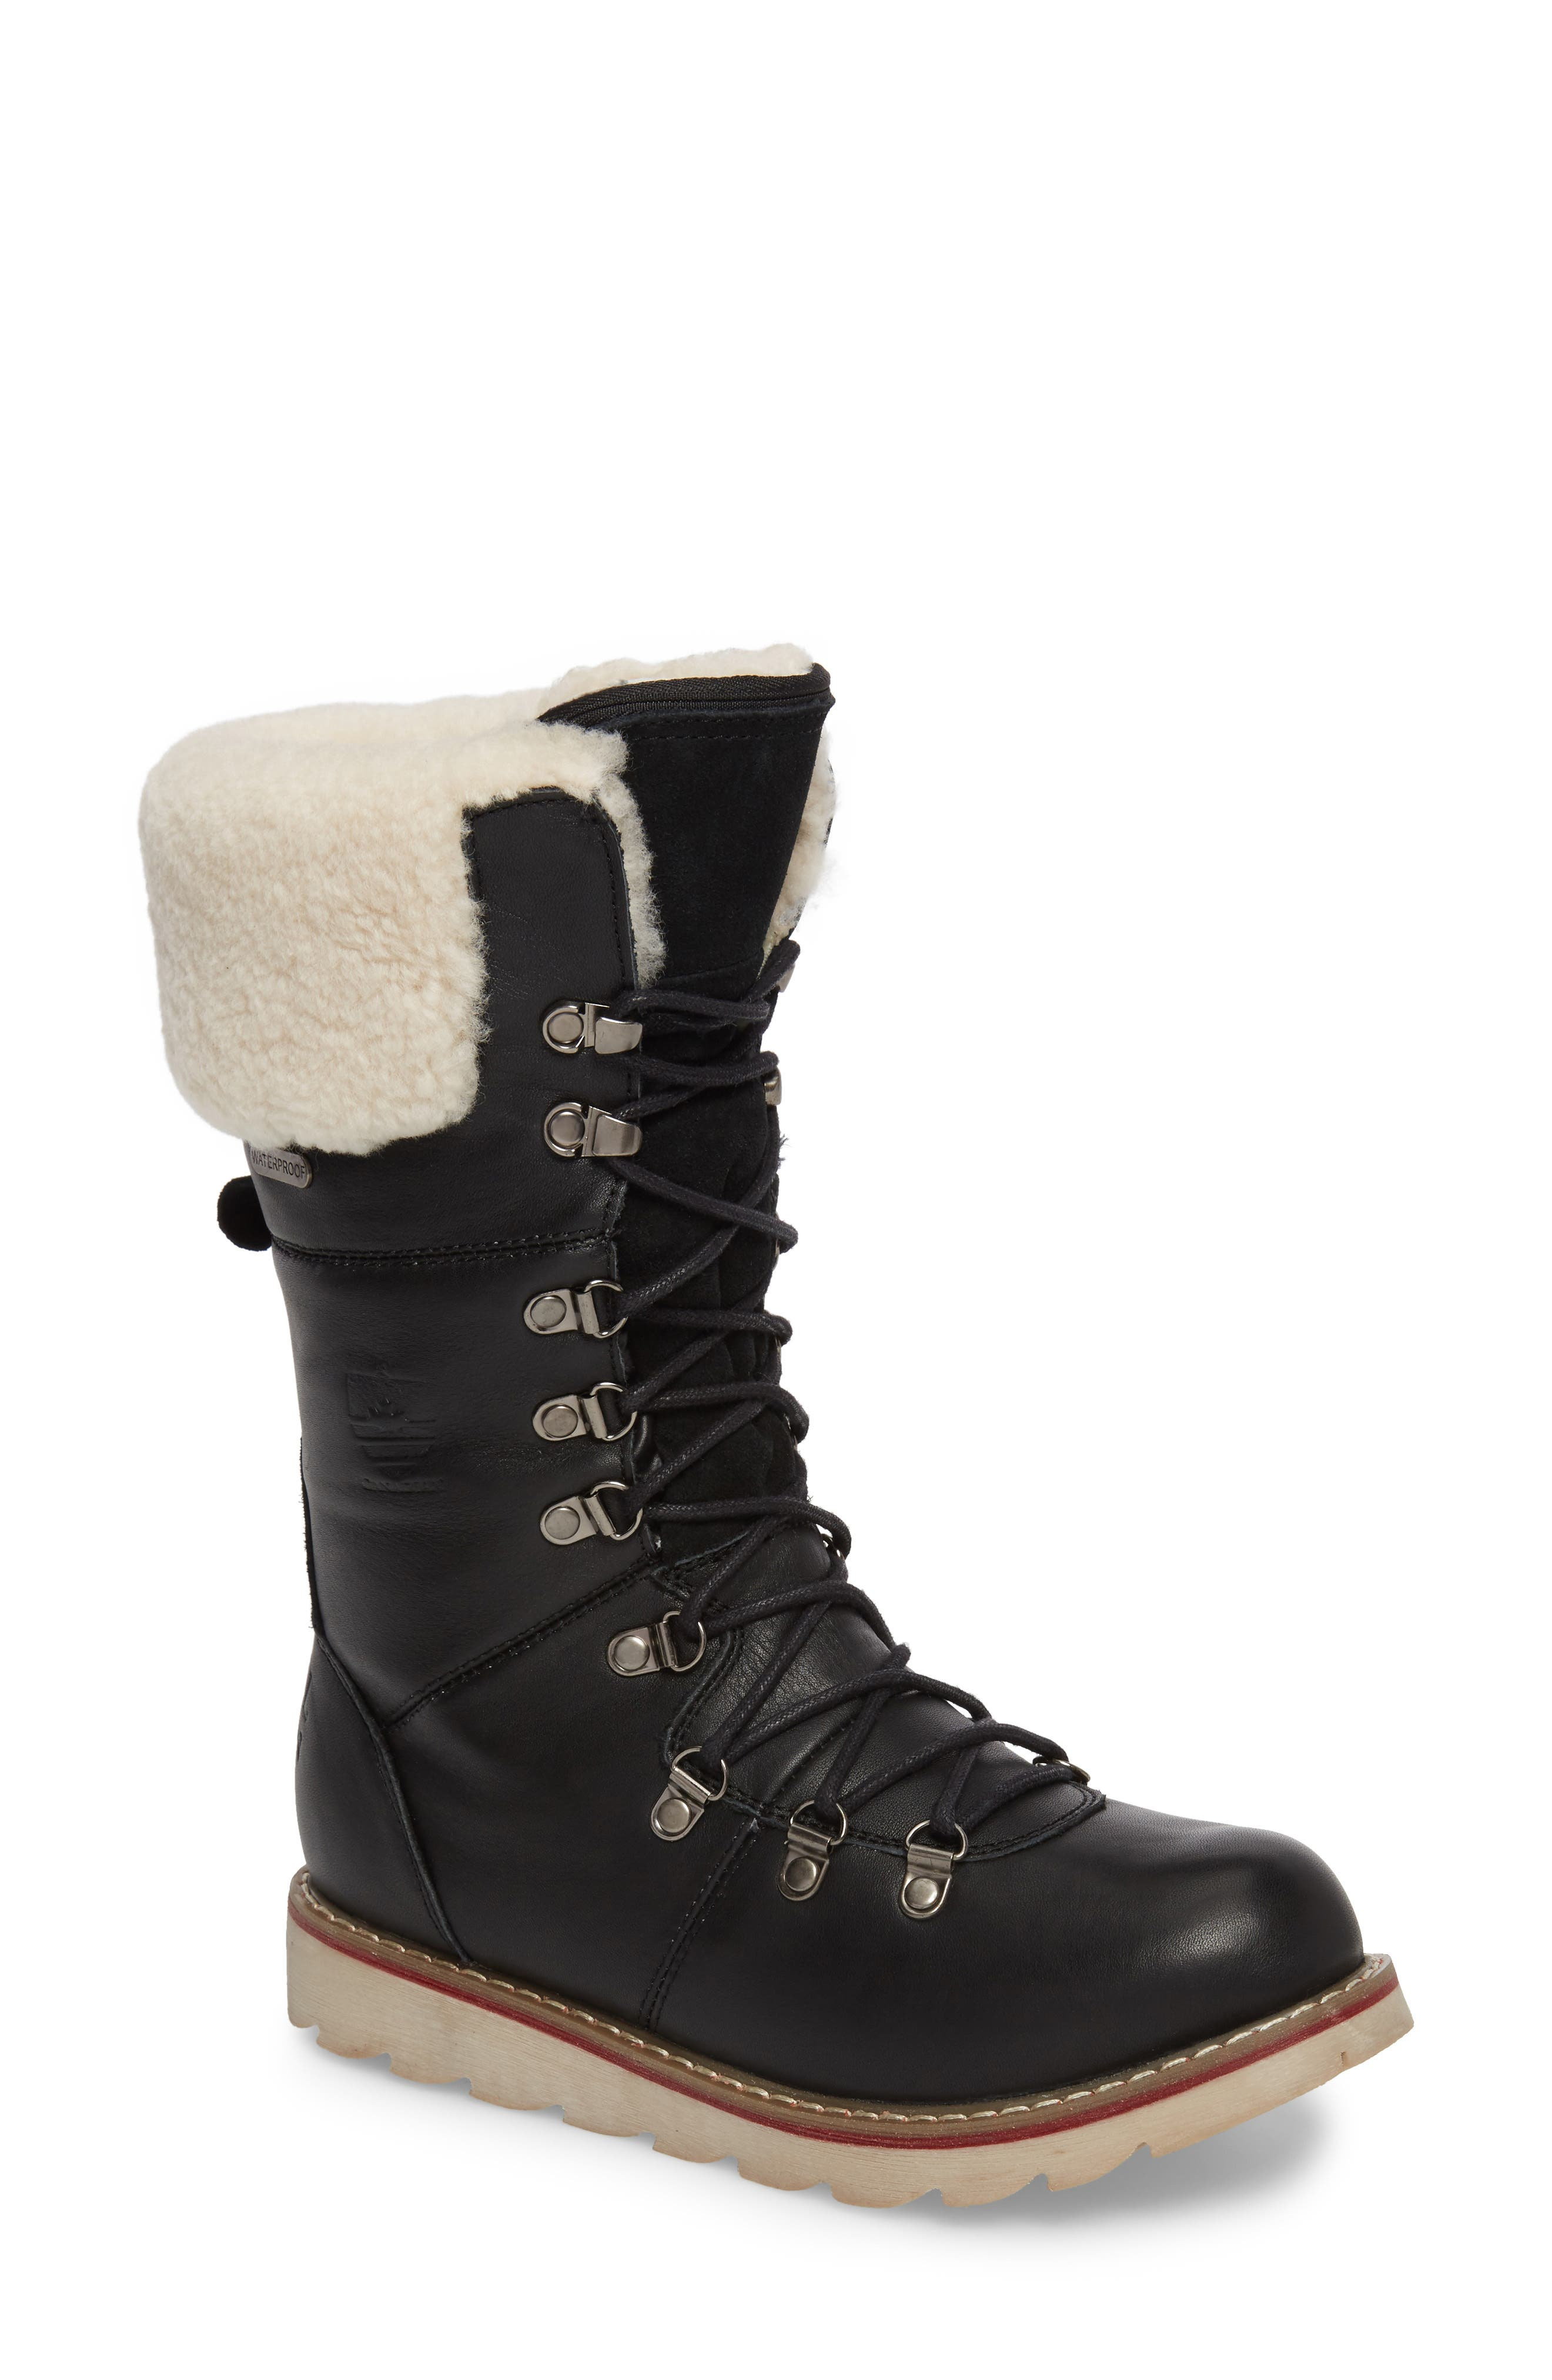 Louise Waterproof Snow Boot with Genuine Shearling Cuff,                             Main thumbnail 1, color,                             Black Leather